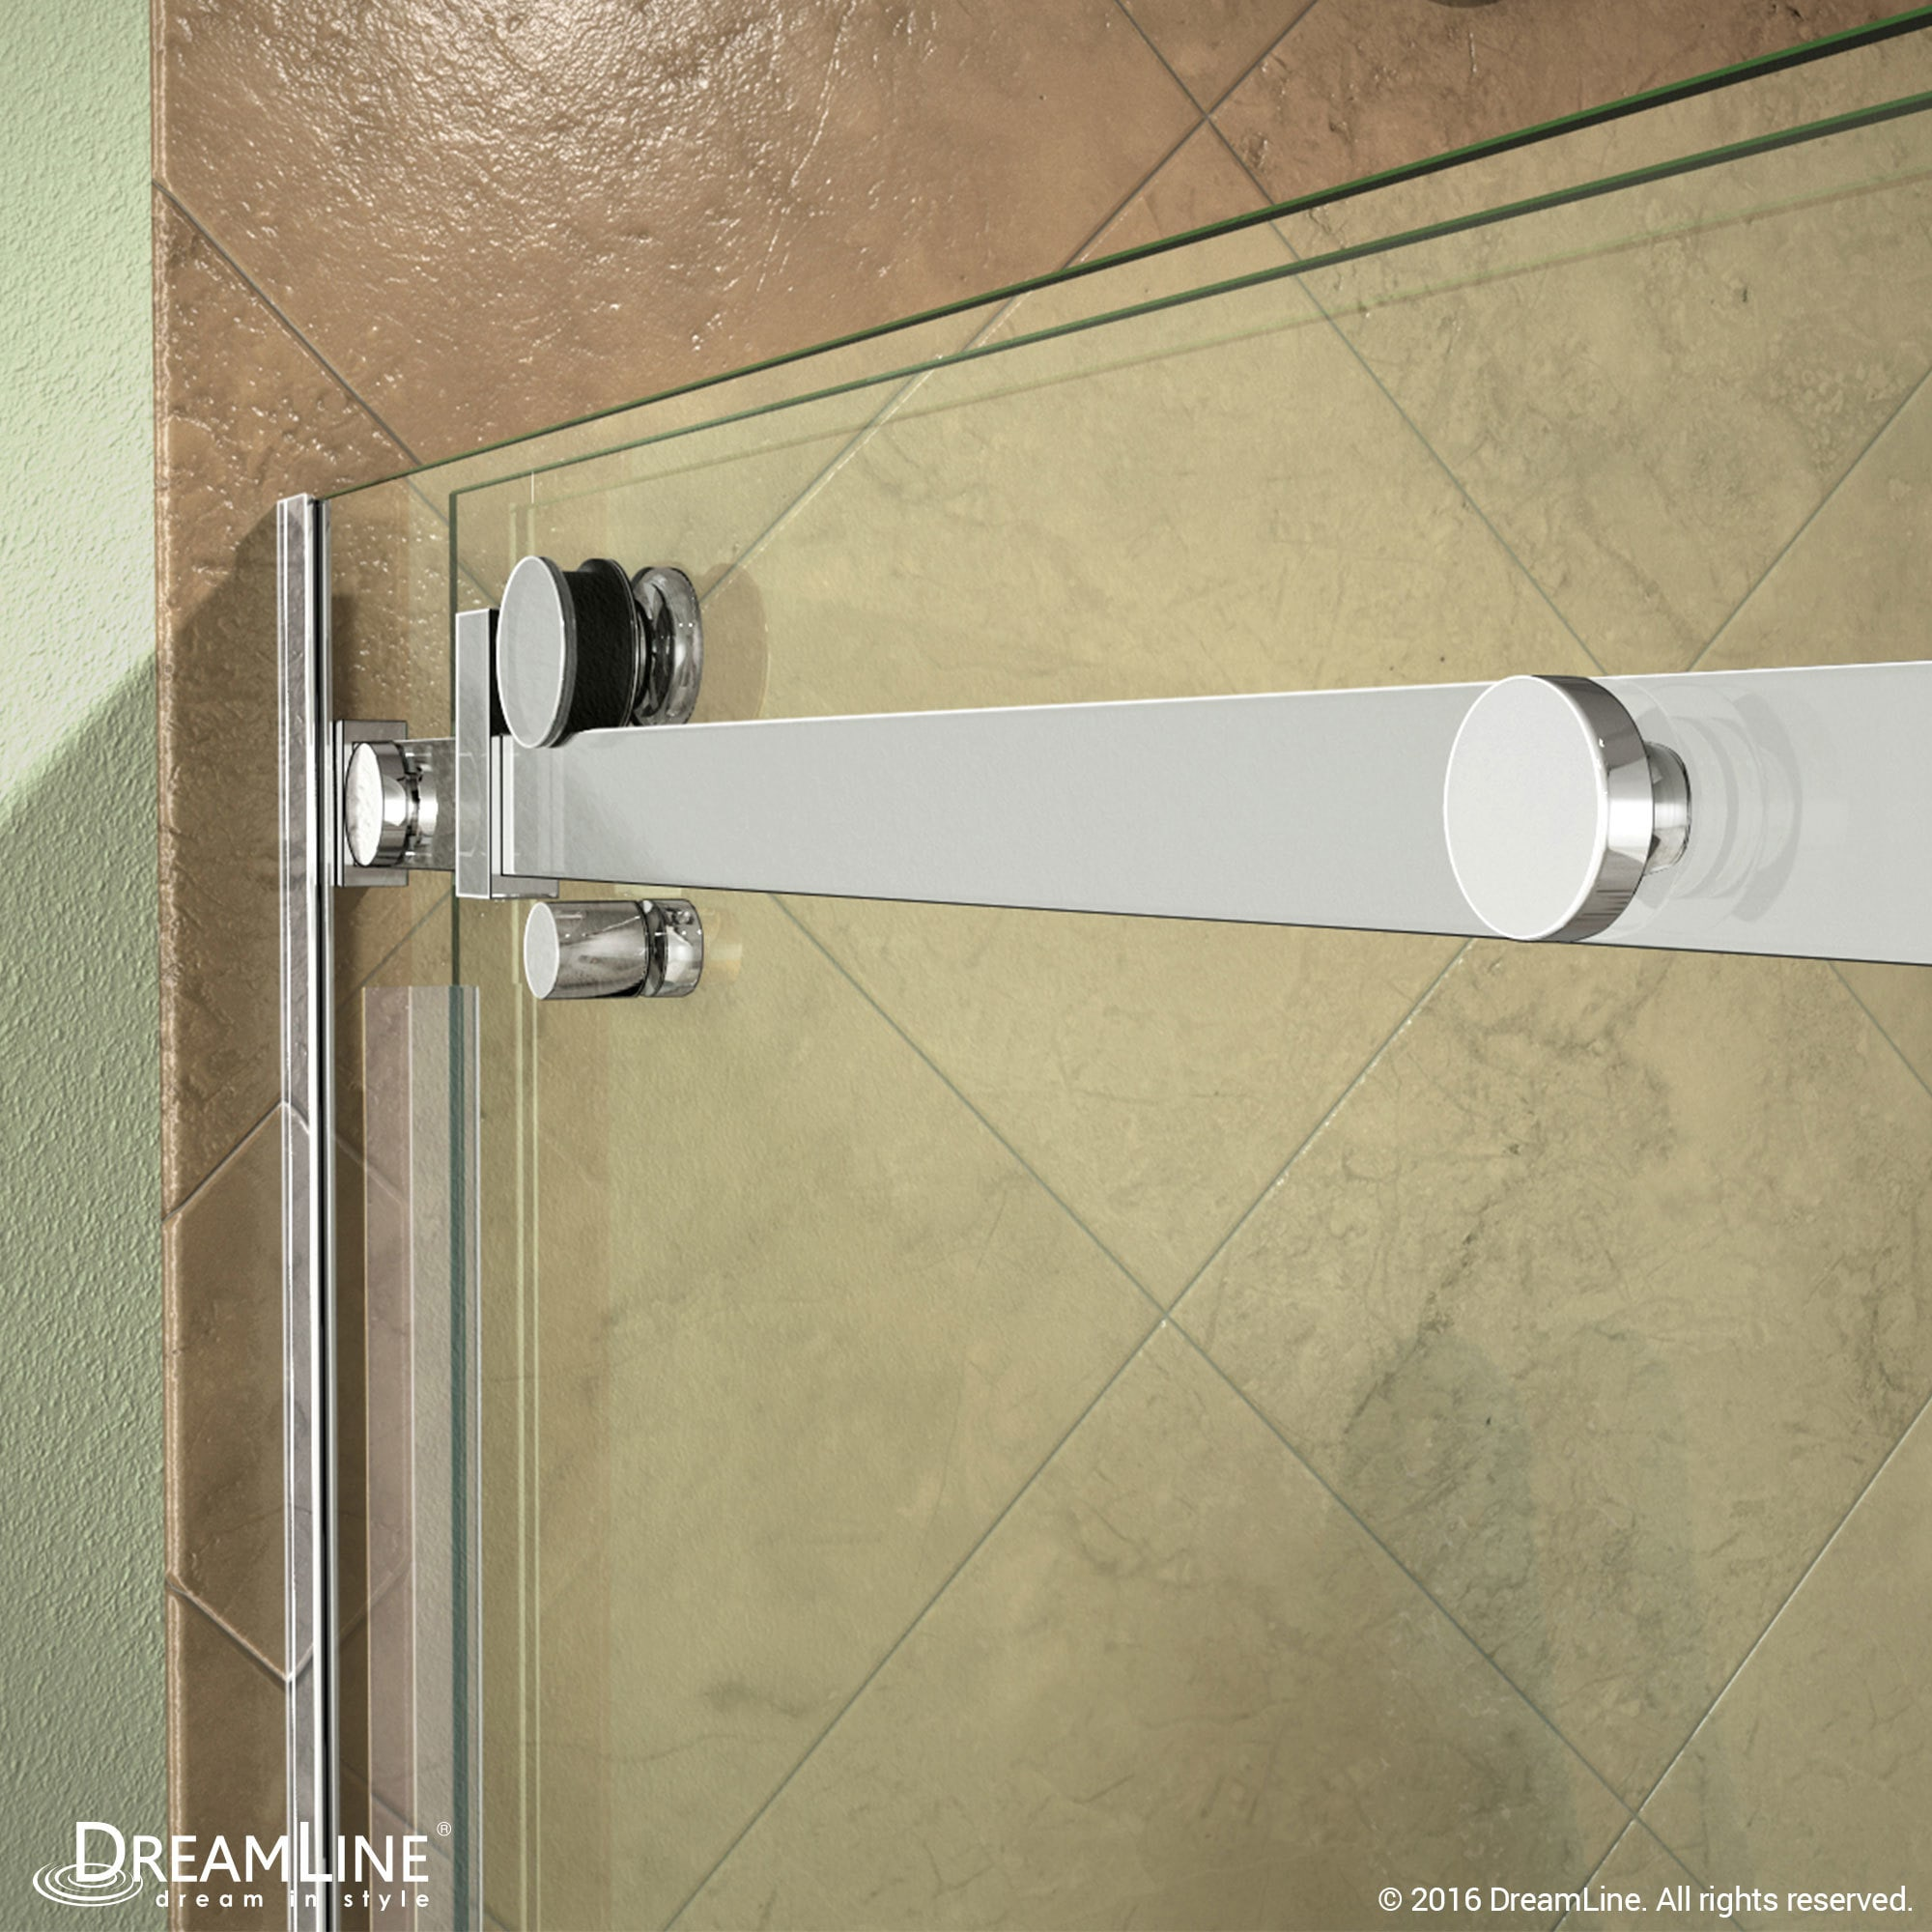 x handle frameless shower finish h oil air doors sliding rubbed enigma dreamline door p shdr bronze w